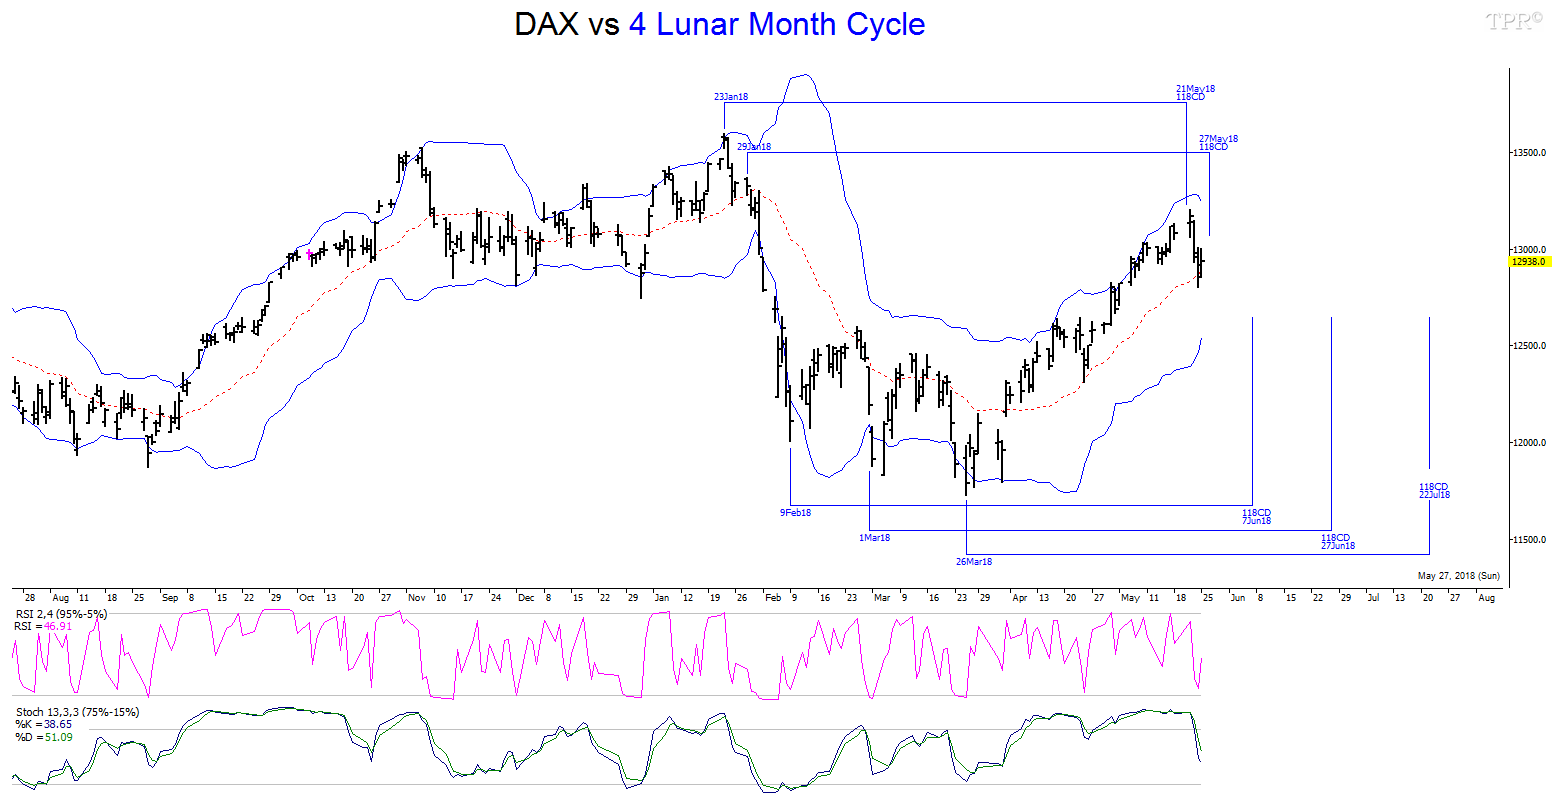 Time-Price-Research: Russel 2000 Index and DAX vs 4 Lunar